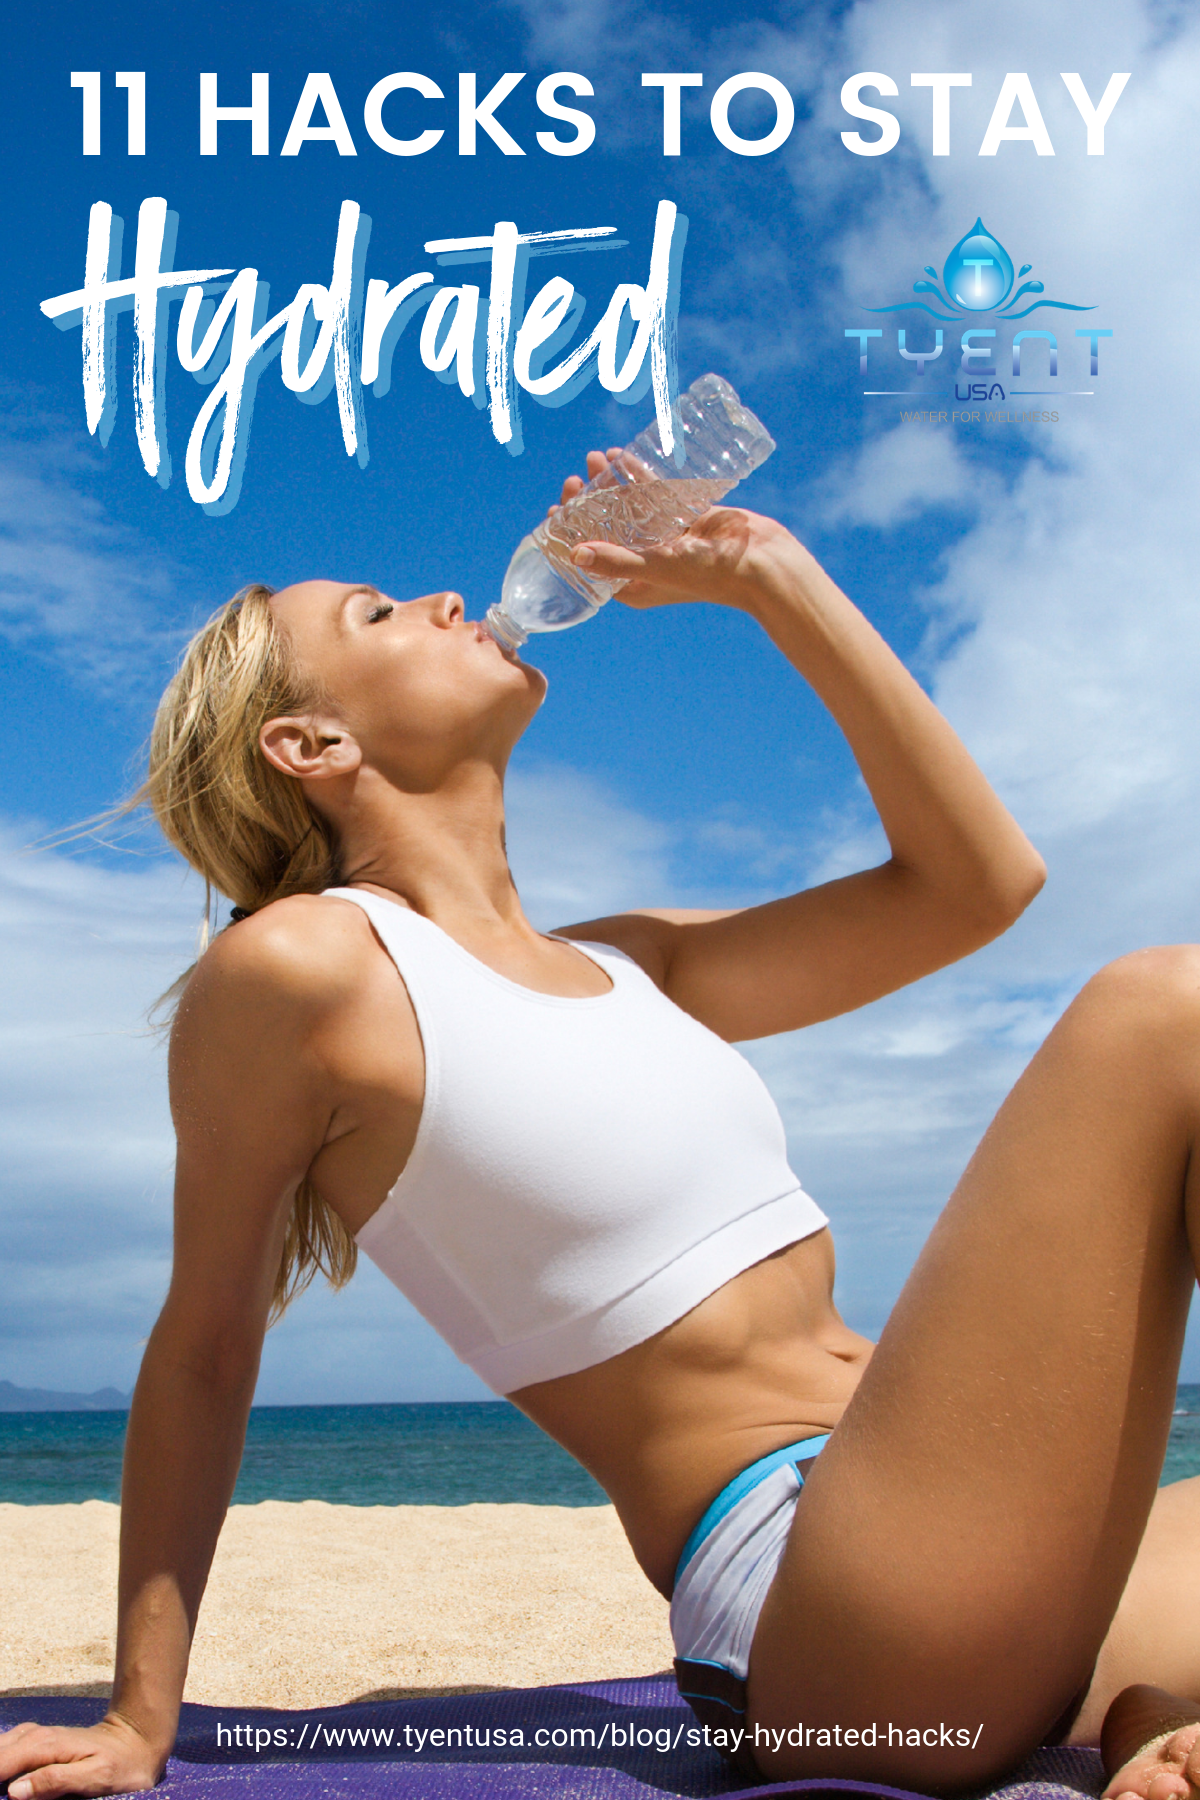 11 Hacks To Stay Hydrated https://www.tyentusa.com/blog/stay-hydrated-hacks/